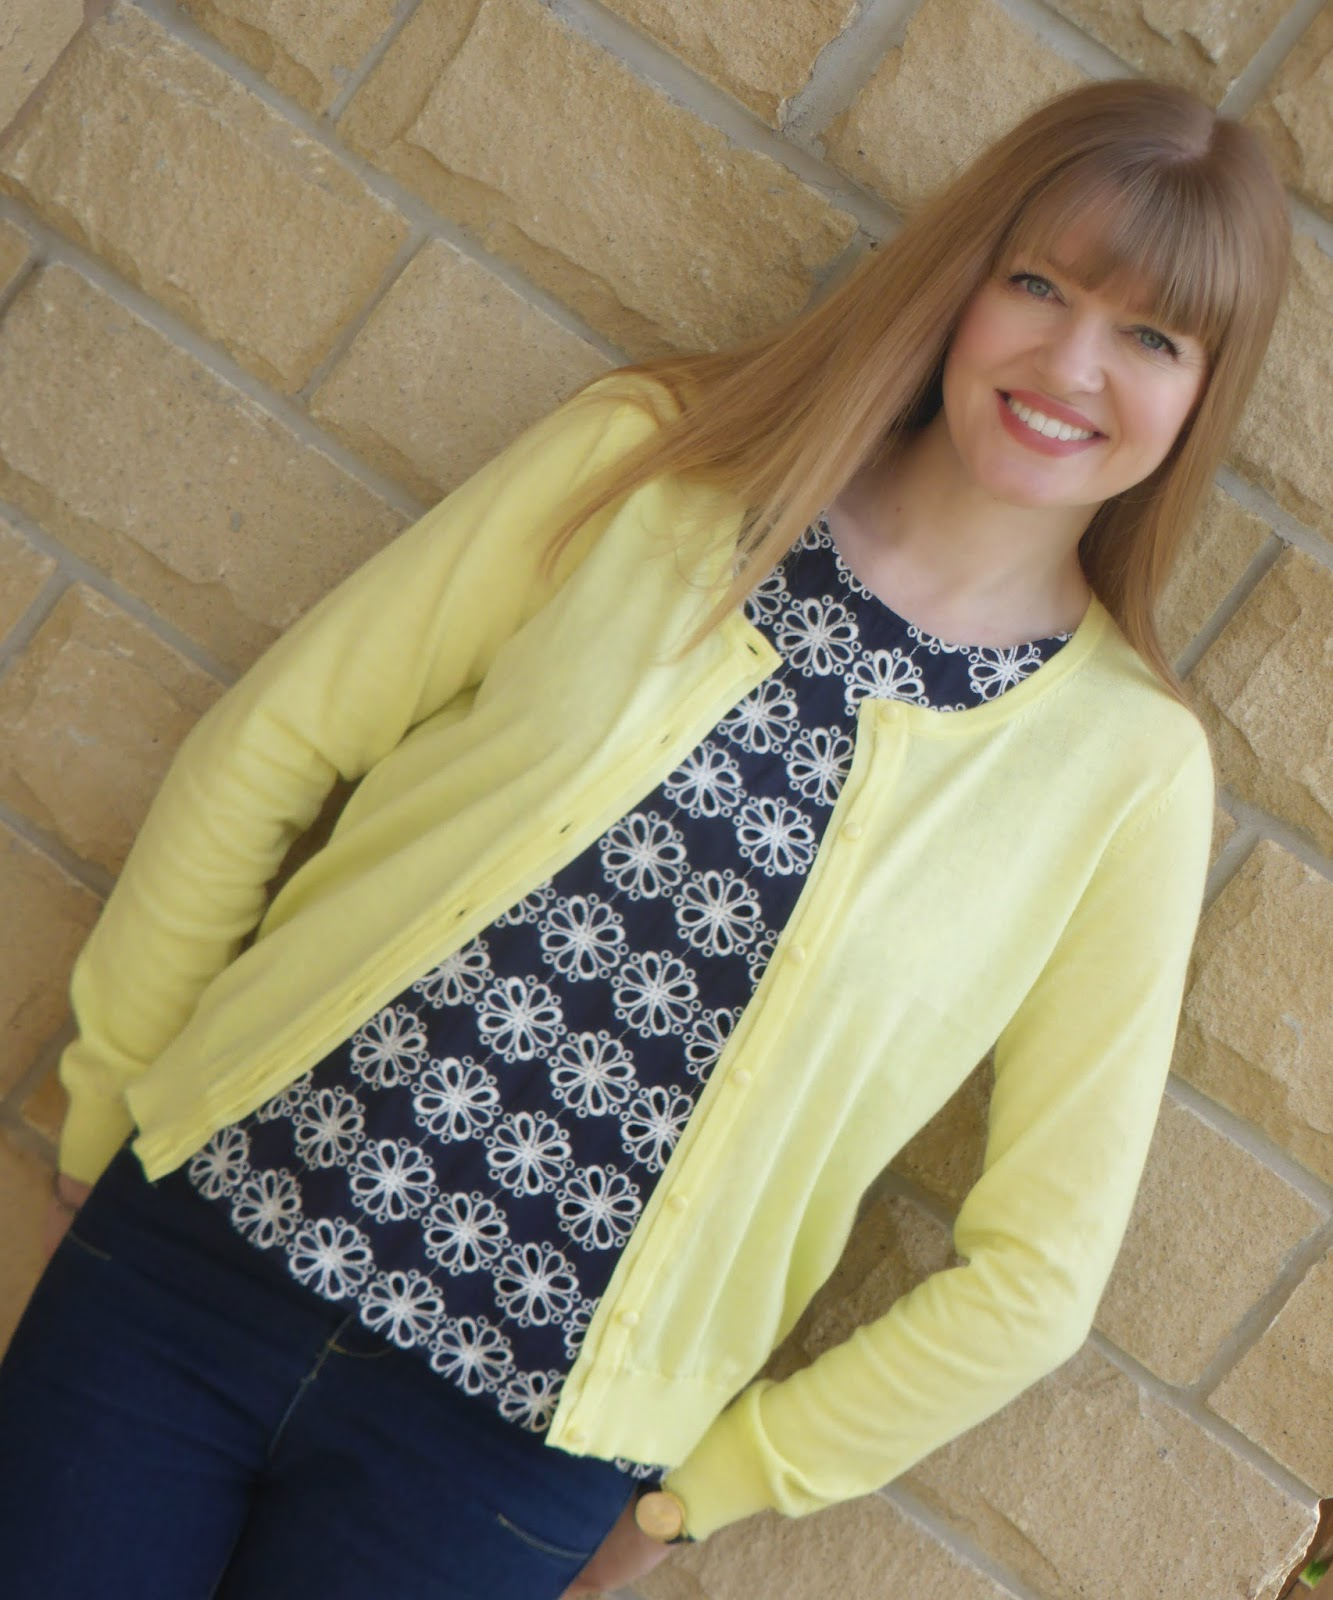 over 40 fashion blog, What Lizzy Loves wearins Navy Boden broderoe top, lemon yellow cardigan, skinny jeans, Navy sequin Boden heels